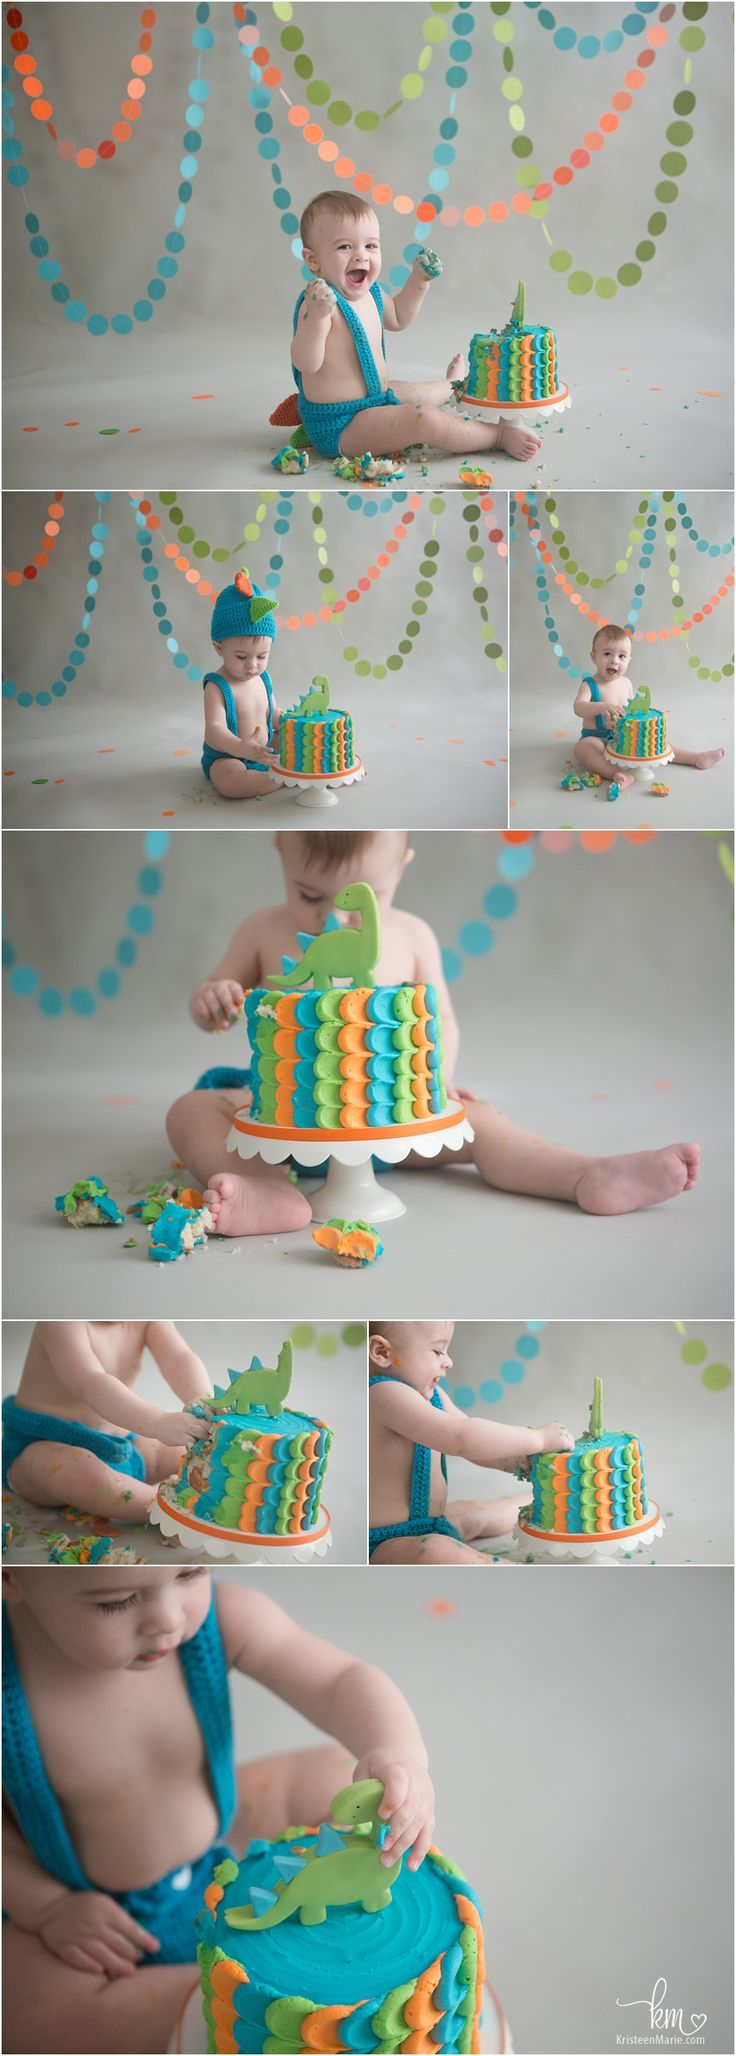 352 Best Cake Smash And First Birthday Pictures Images On Pinterest